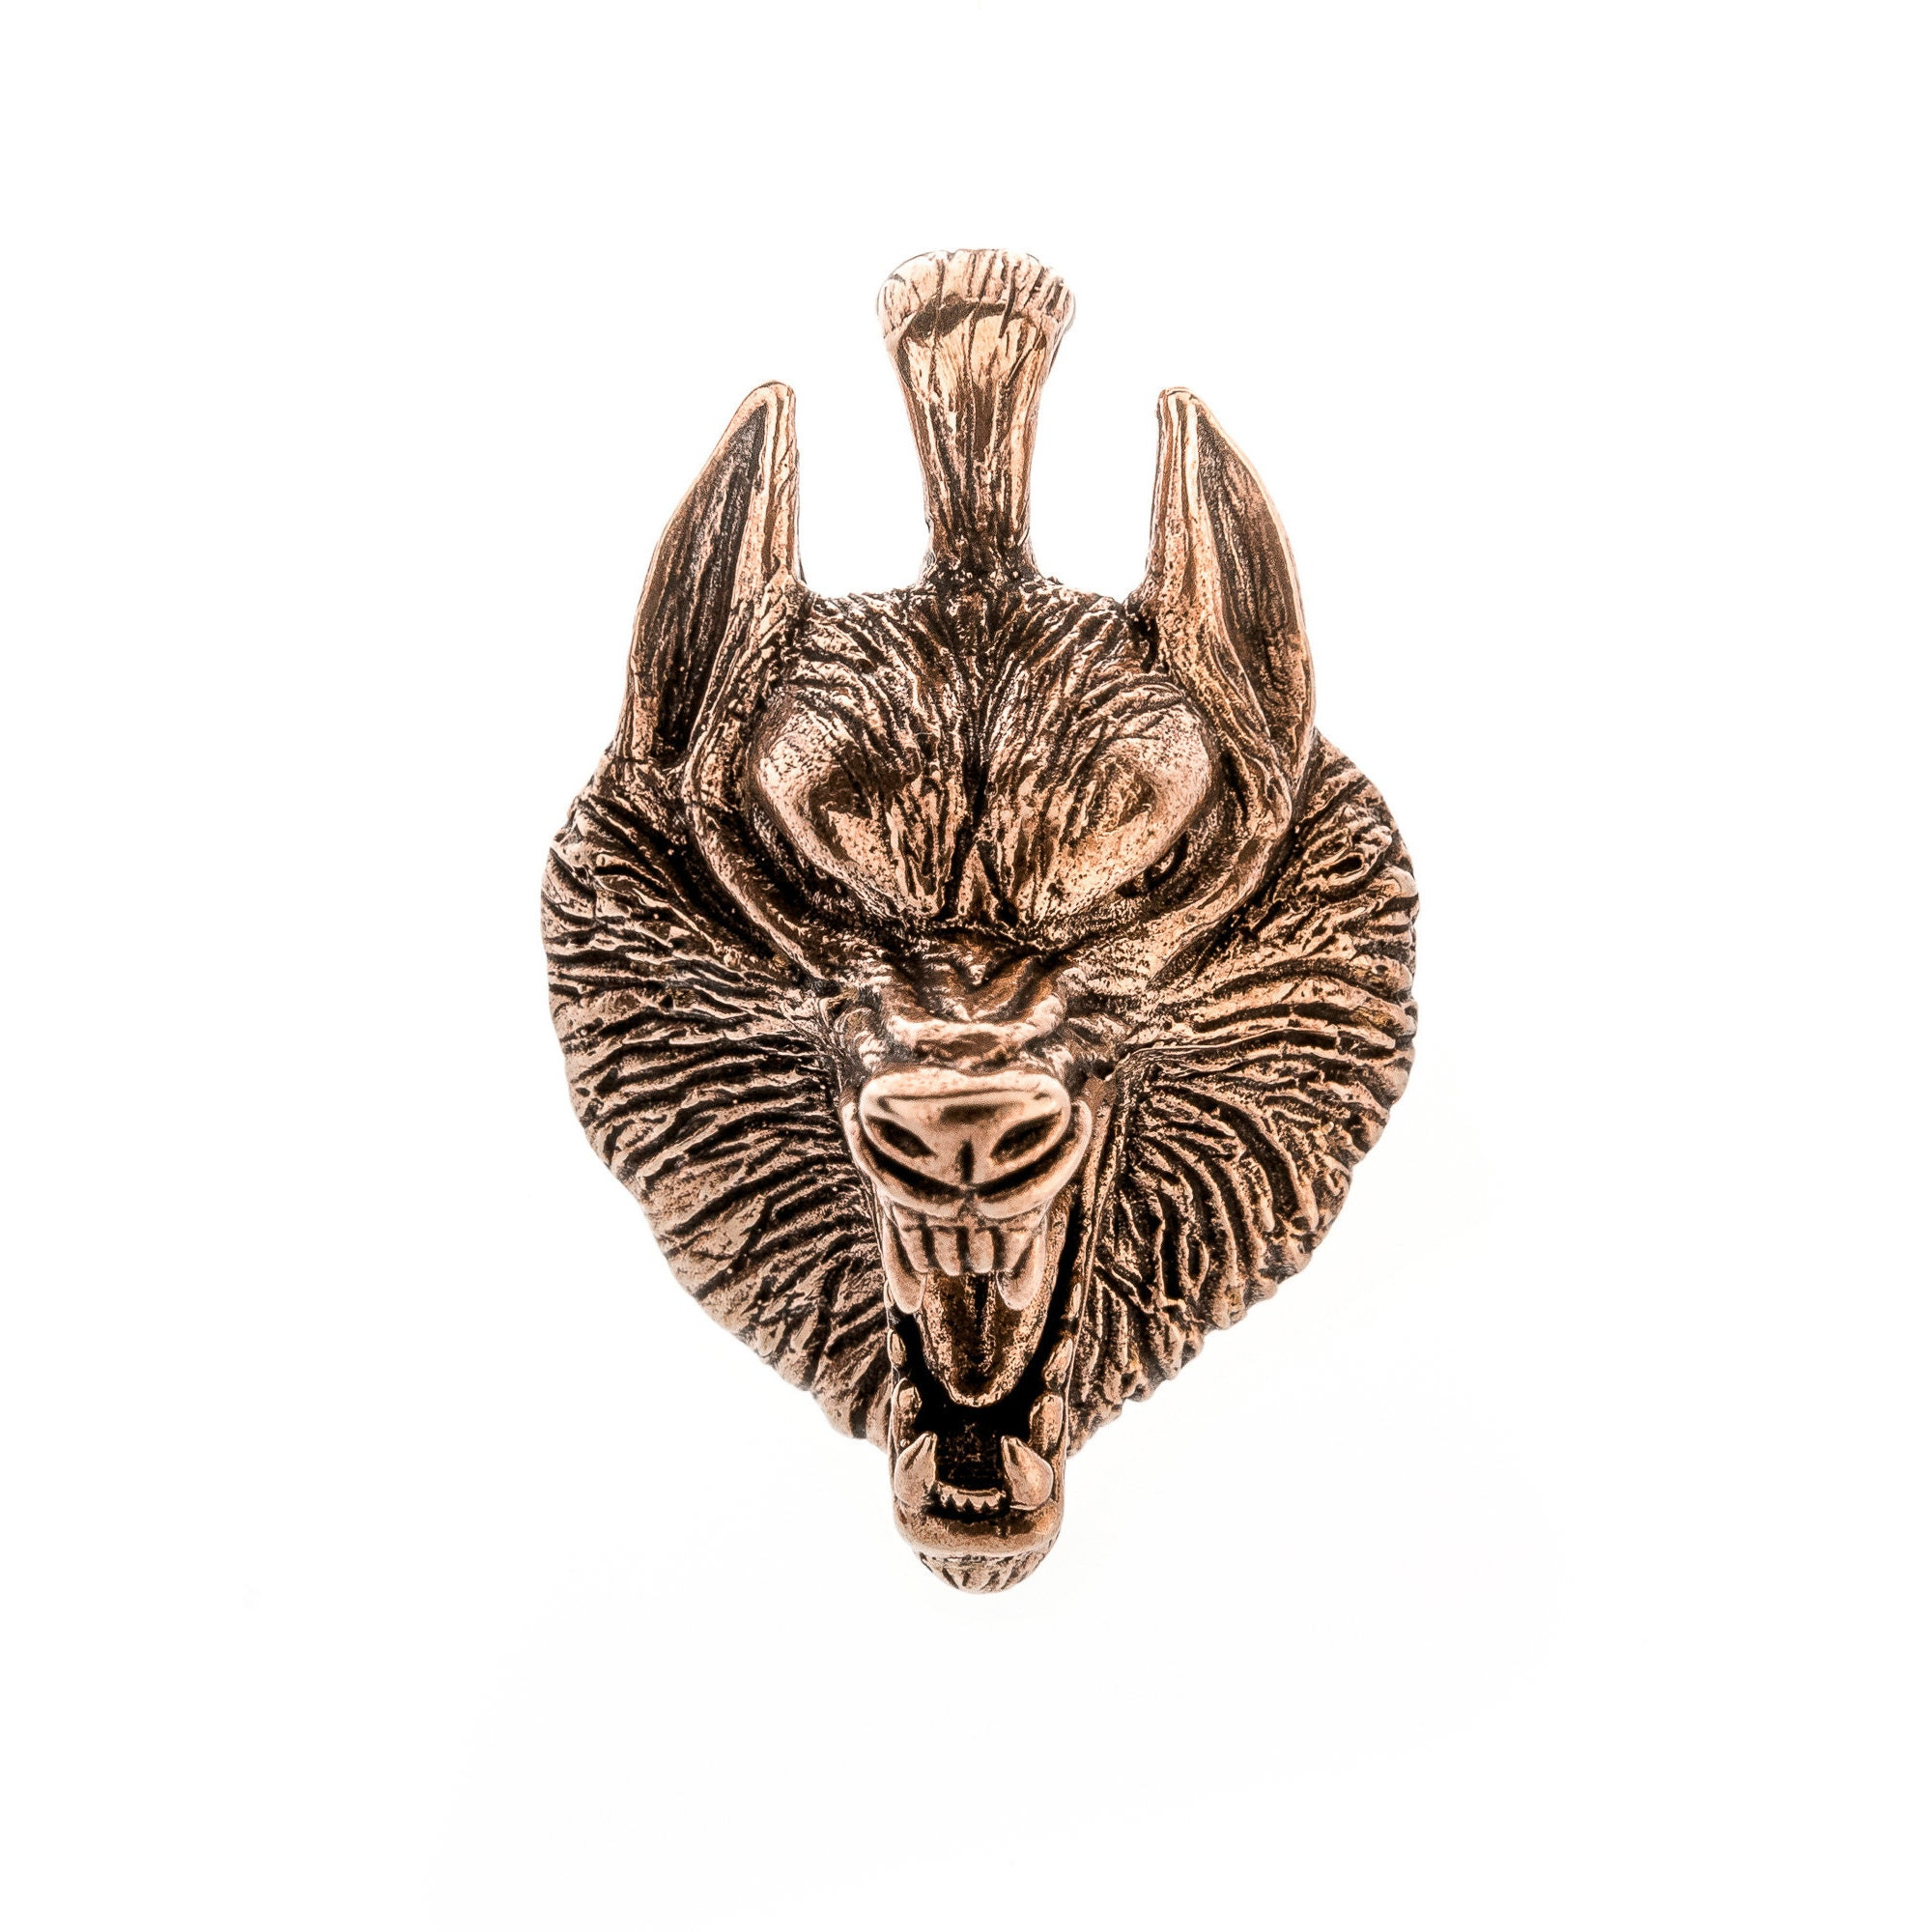 head free overstock jewelry com orders silver on howling watches handmade thailand shipping pendant over sterling product wolf wild